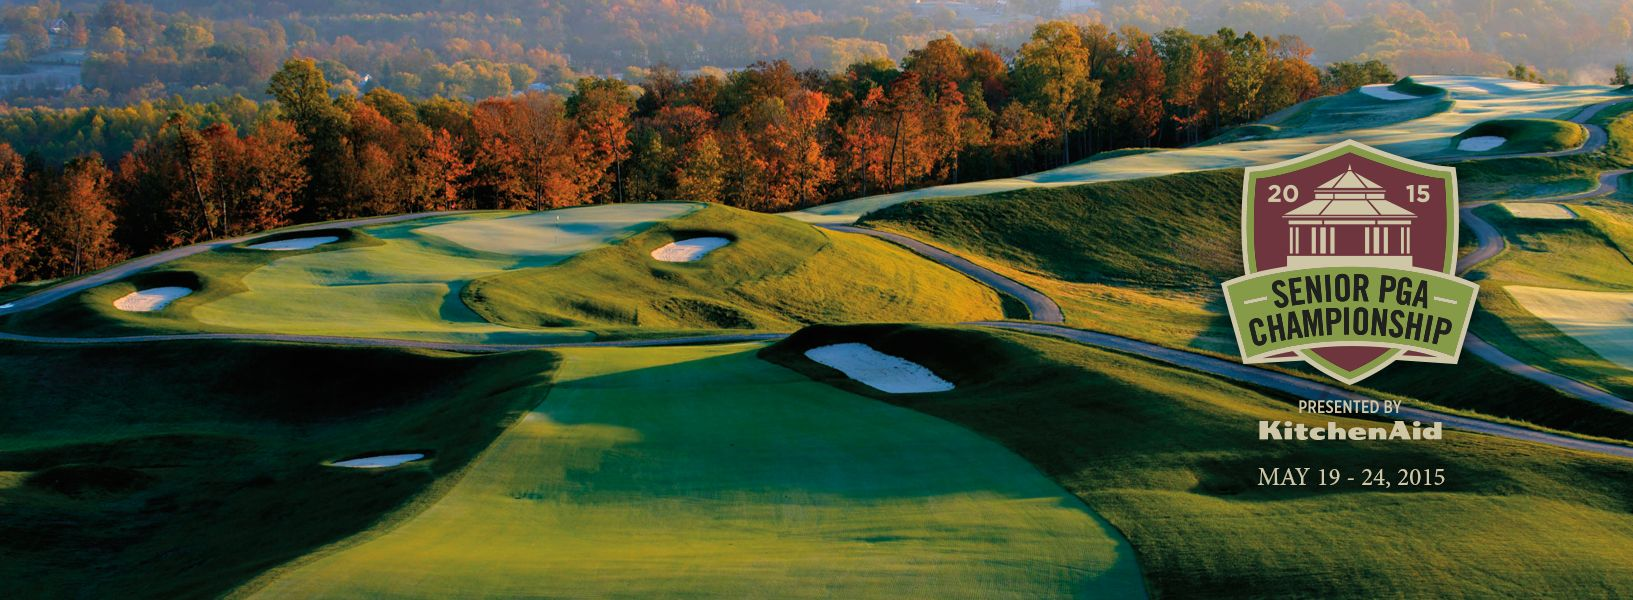 French lick indiana golf courses